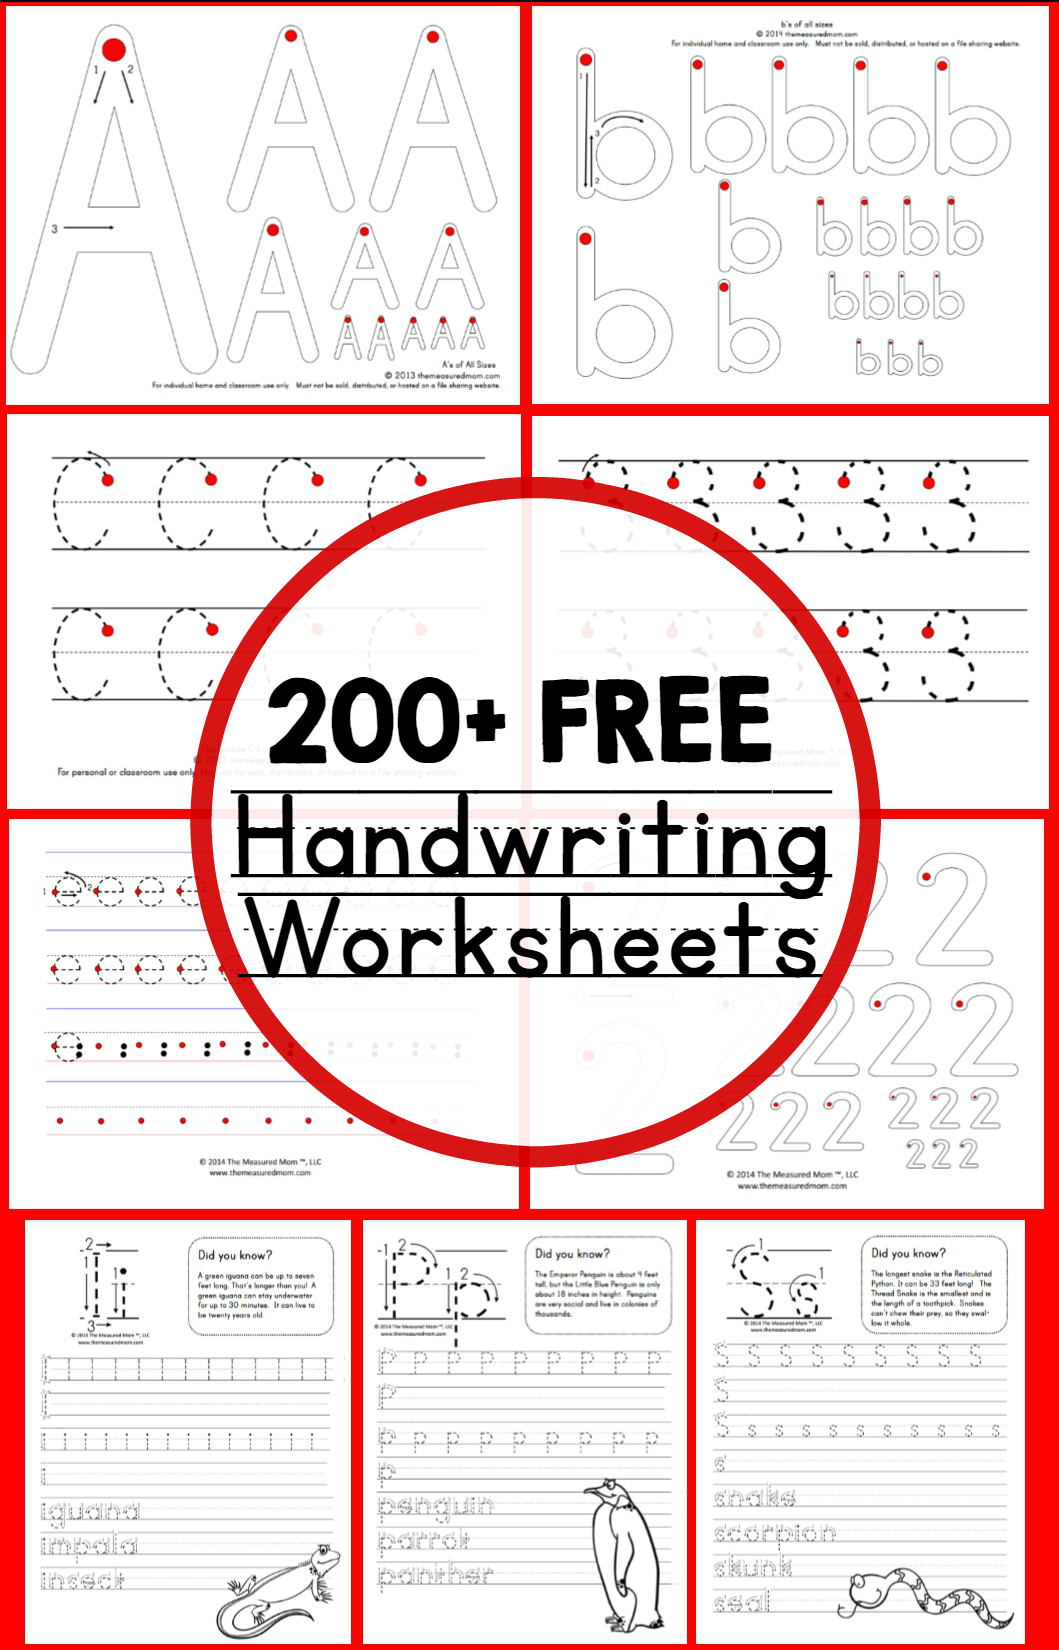 17 Best images about Sandy's worksheets on Pinterest  Middle  alphabet worksheets, worksheets, multiplication, printable worksheets, and grade worksheets Peterson Handwriting Worksheets 1650 x 1059